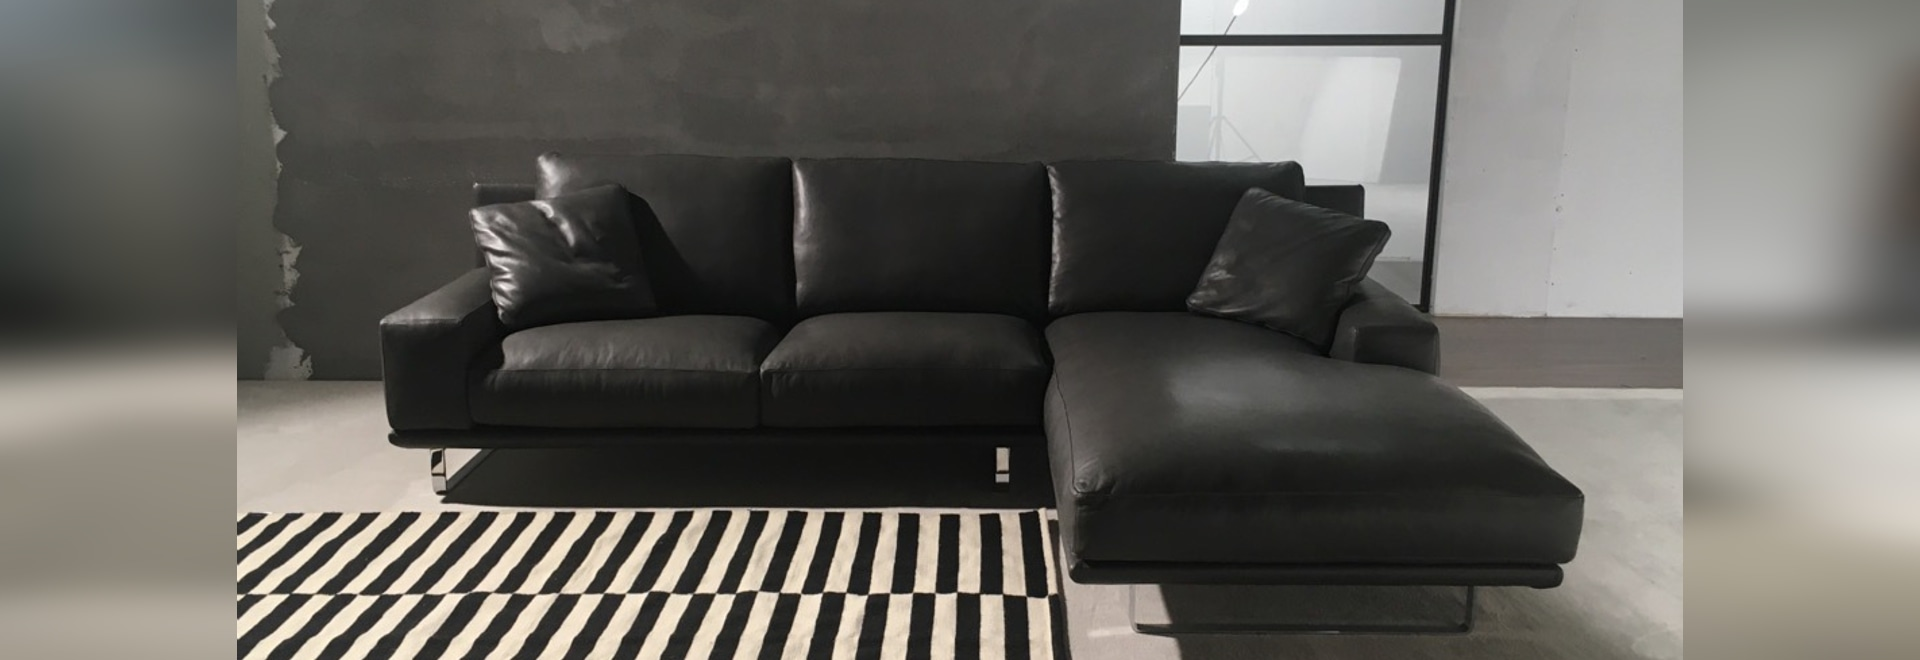 Modern leather sofa with chaise longue